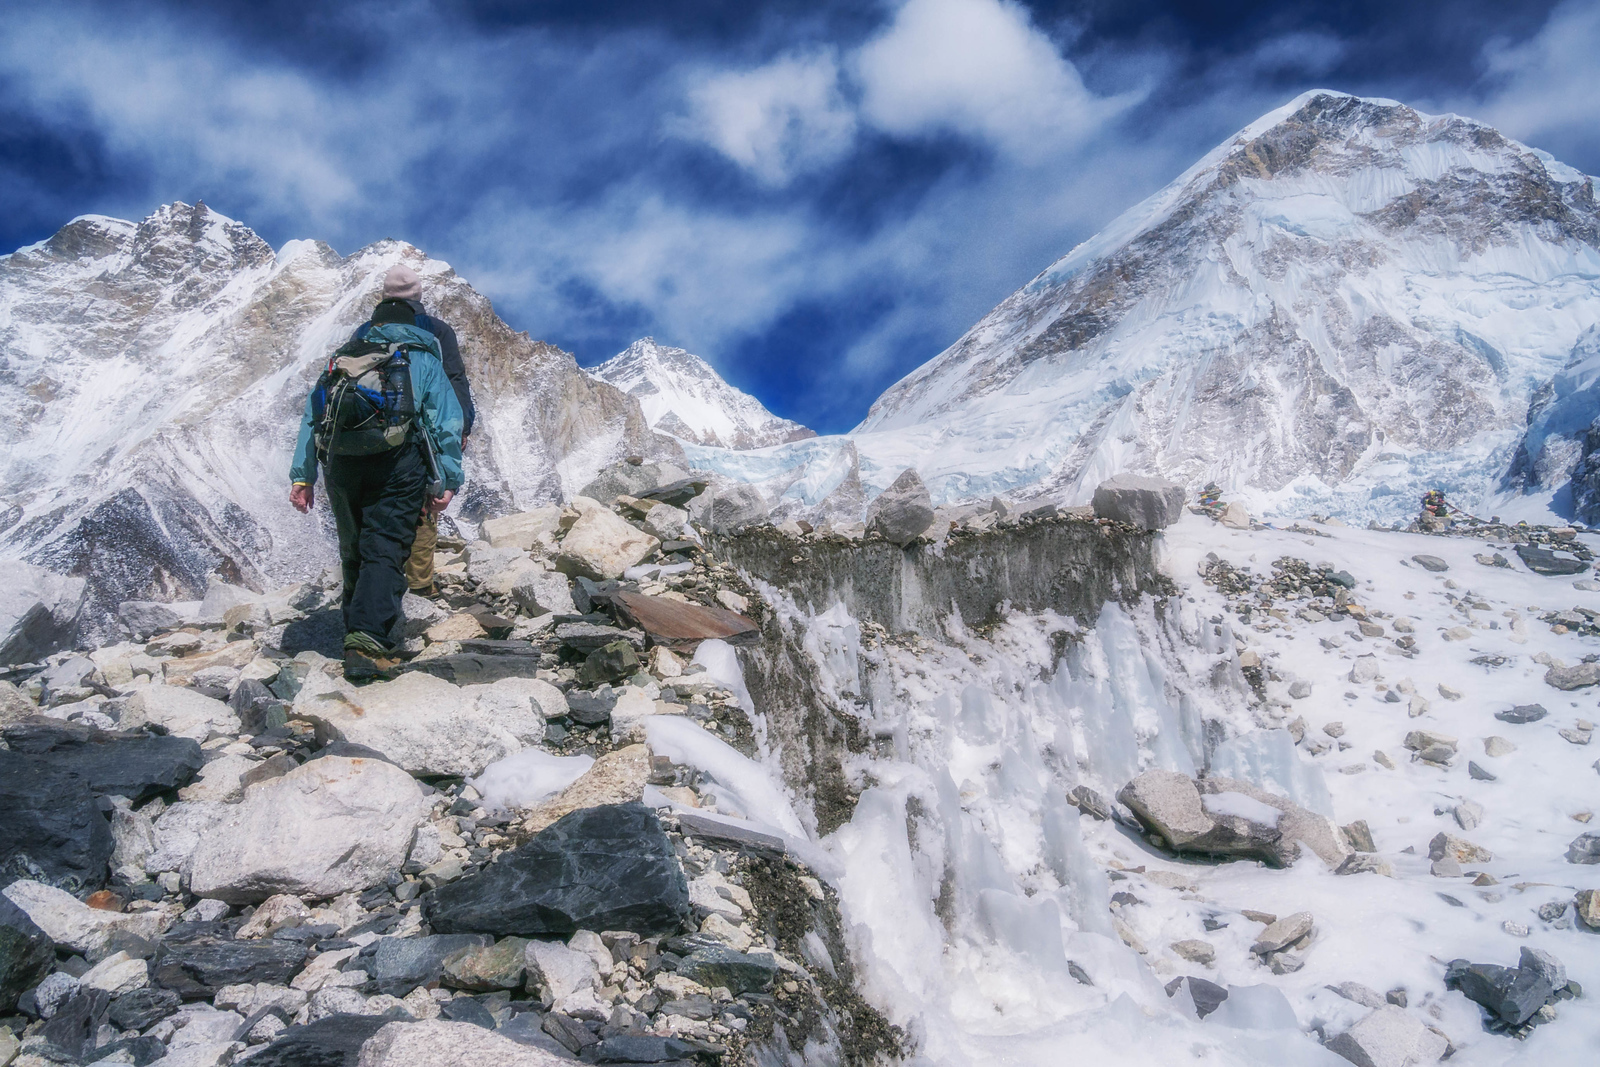 Hiking gets a little harder as we approach Everest Base Camp.